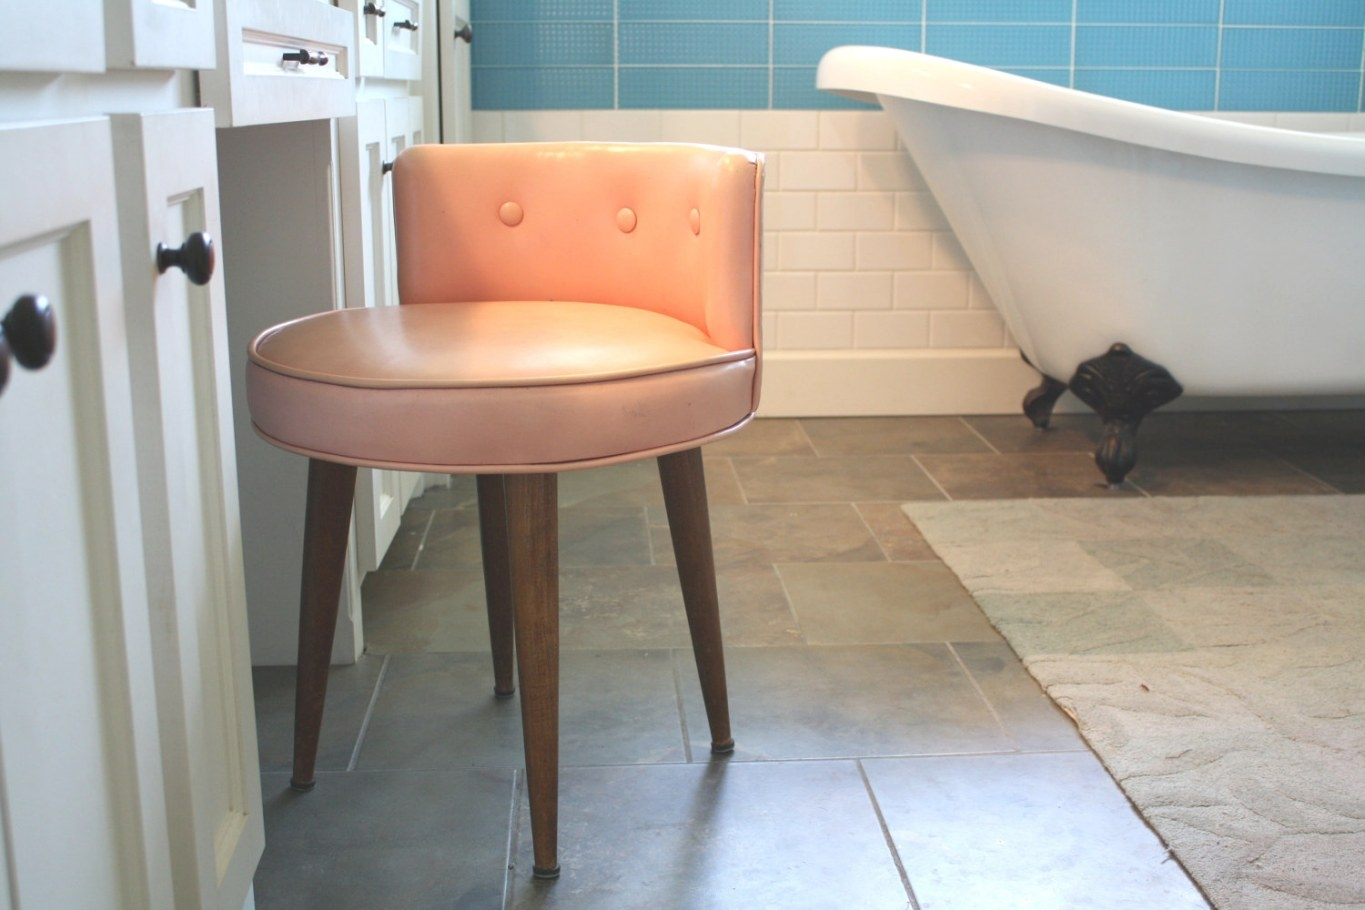 Vanity Chair With Back: Design Options – Homesfeed with Vanity Seats For Bathrooms